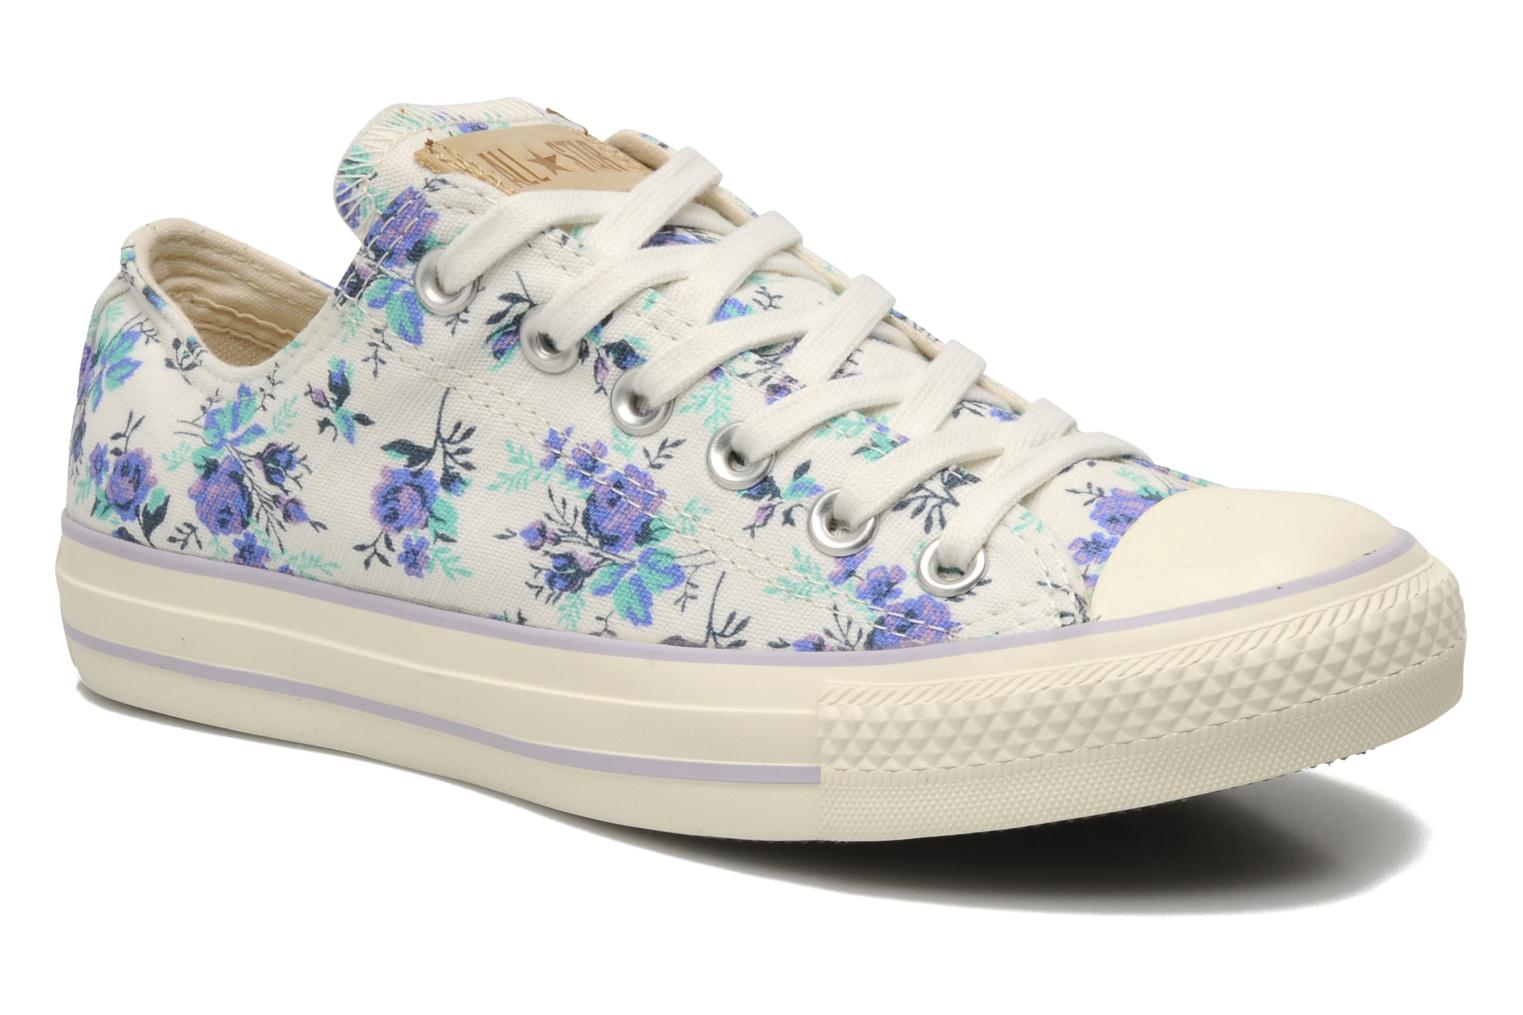 Chuck Taylor All Star Floral Print Ox W by Converse (Multicolor) | Sarenza UK | Your Trainers Chuck Taylor All Star Floral Print Ox W Converse delivered for Free